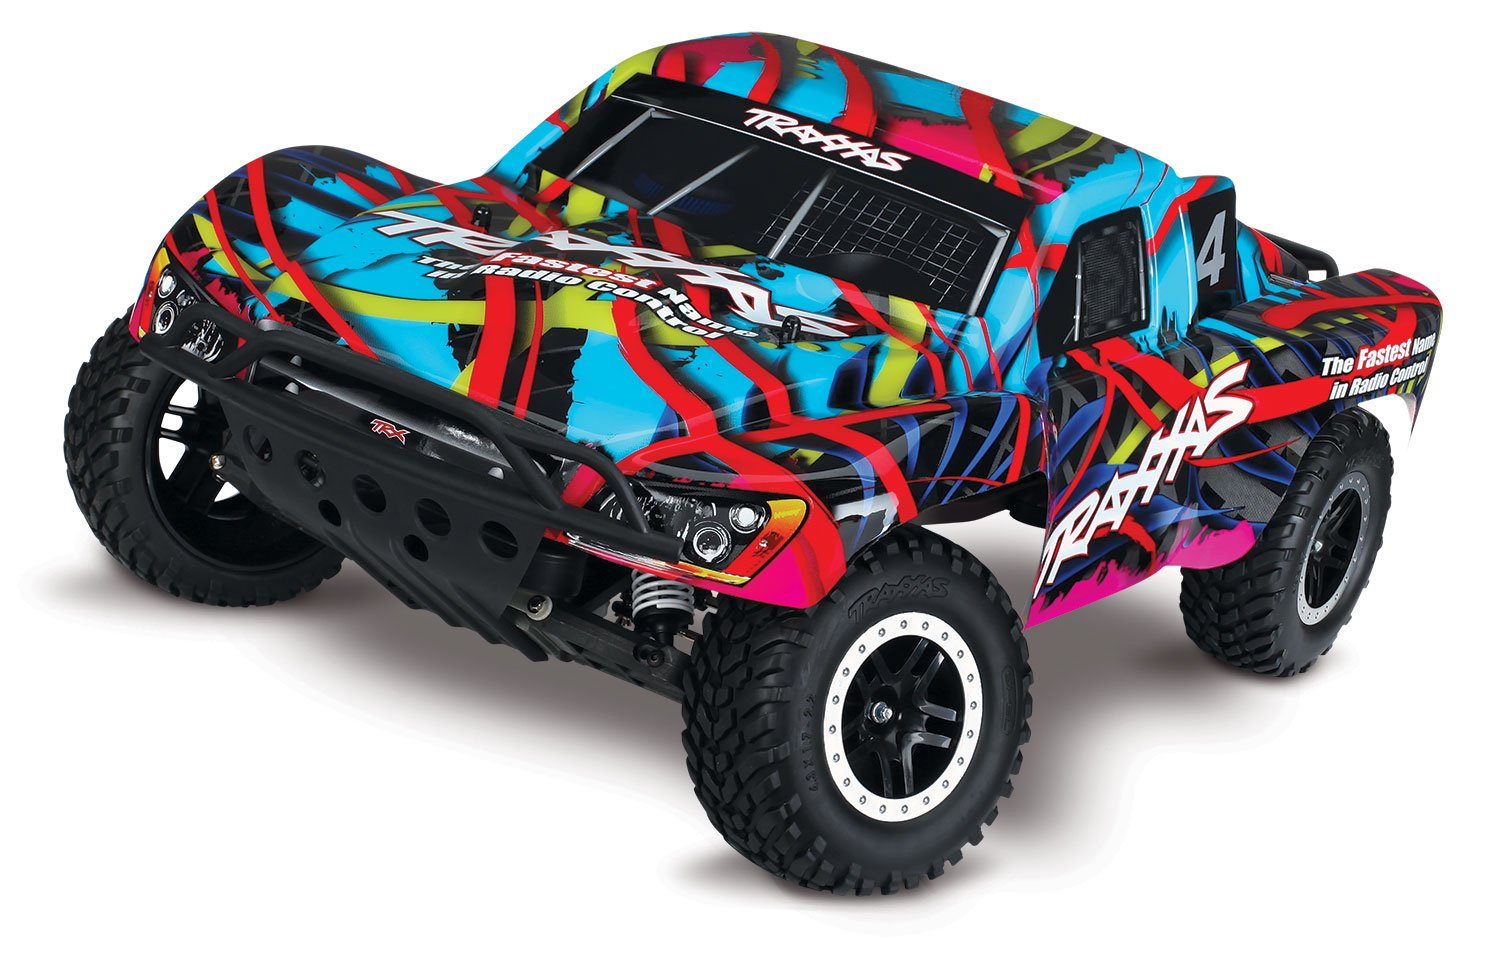 3. Traxxas Slash 1/10 Scale 2WD Short Course Racing Truck with TQ 2.4GHz Radio System, Hawaiian